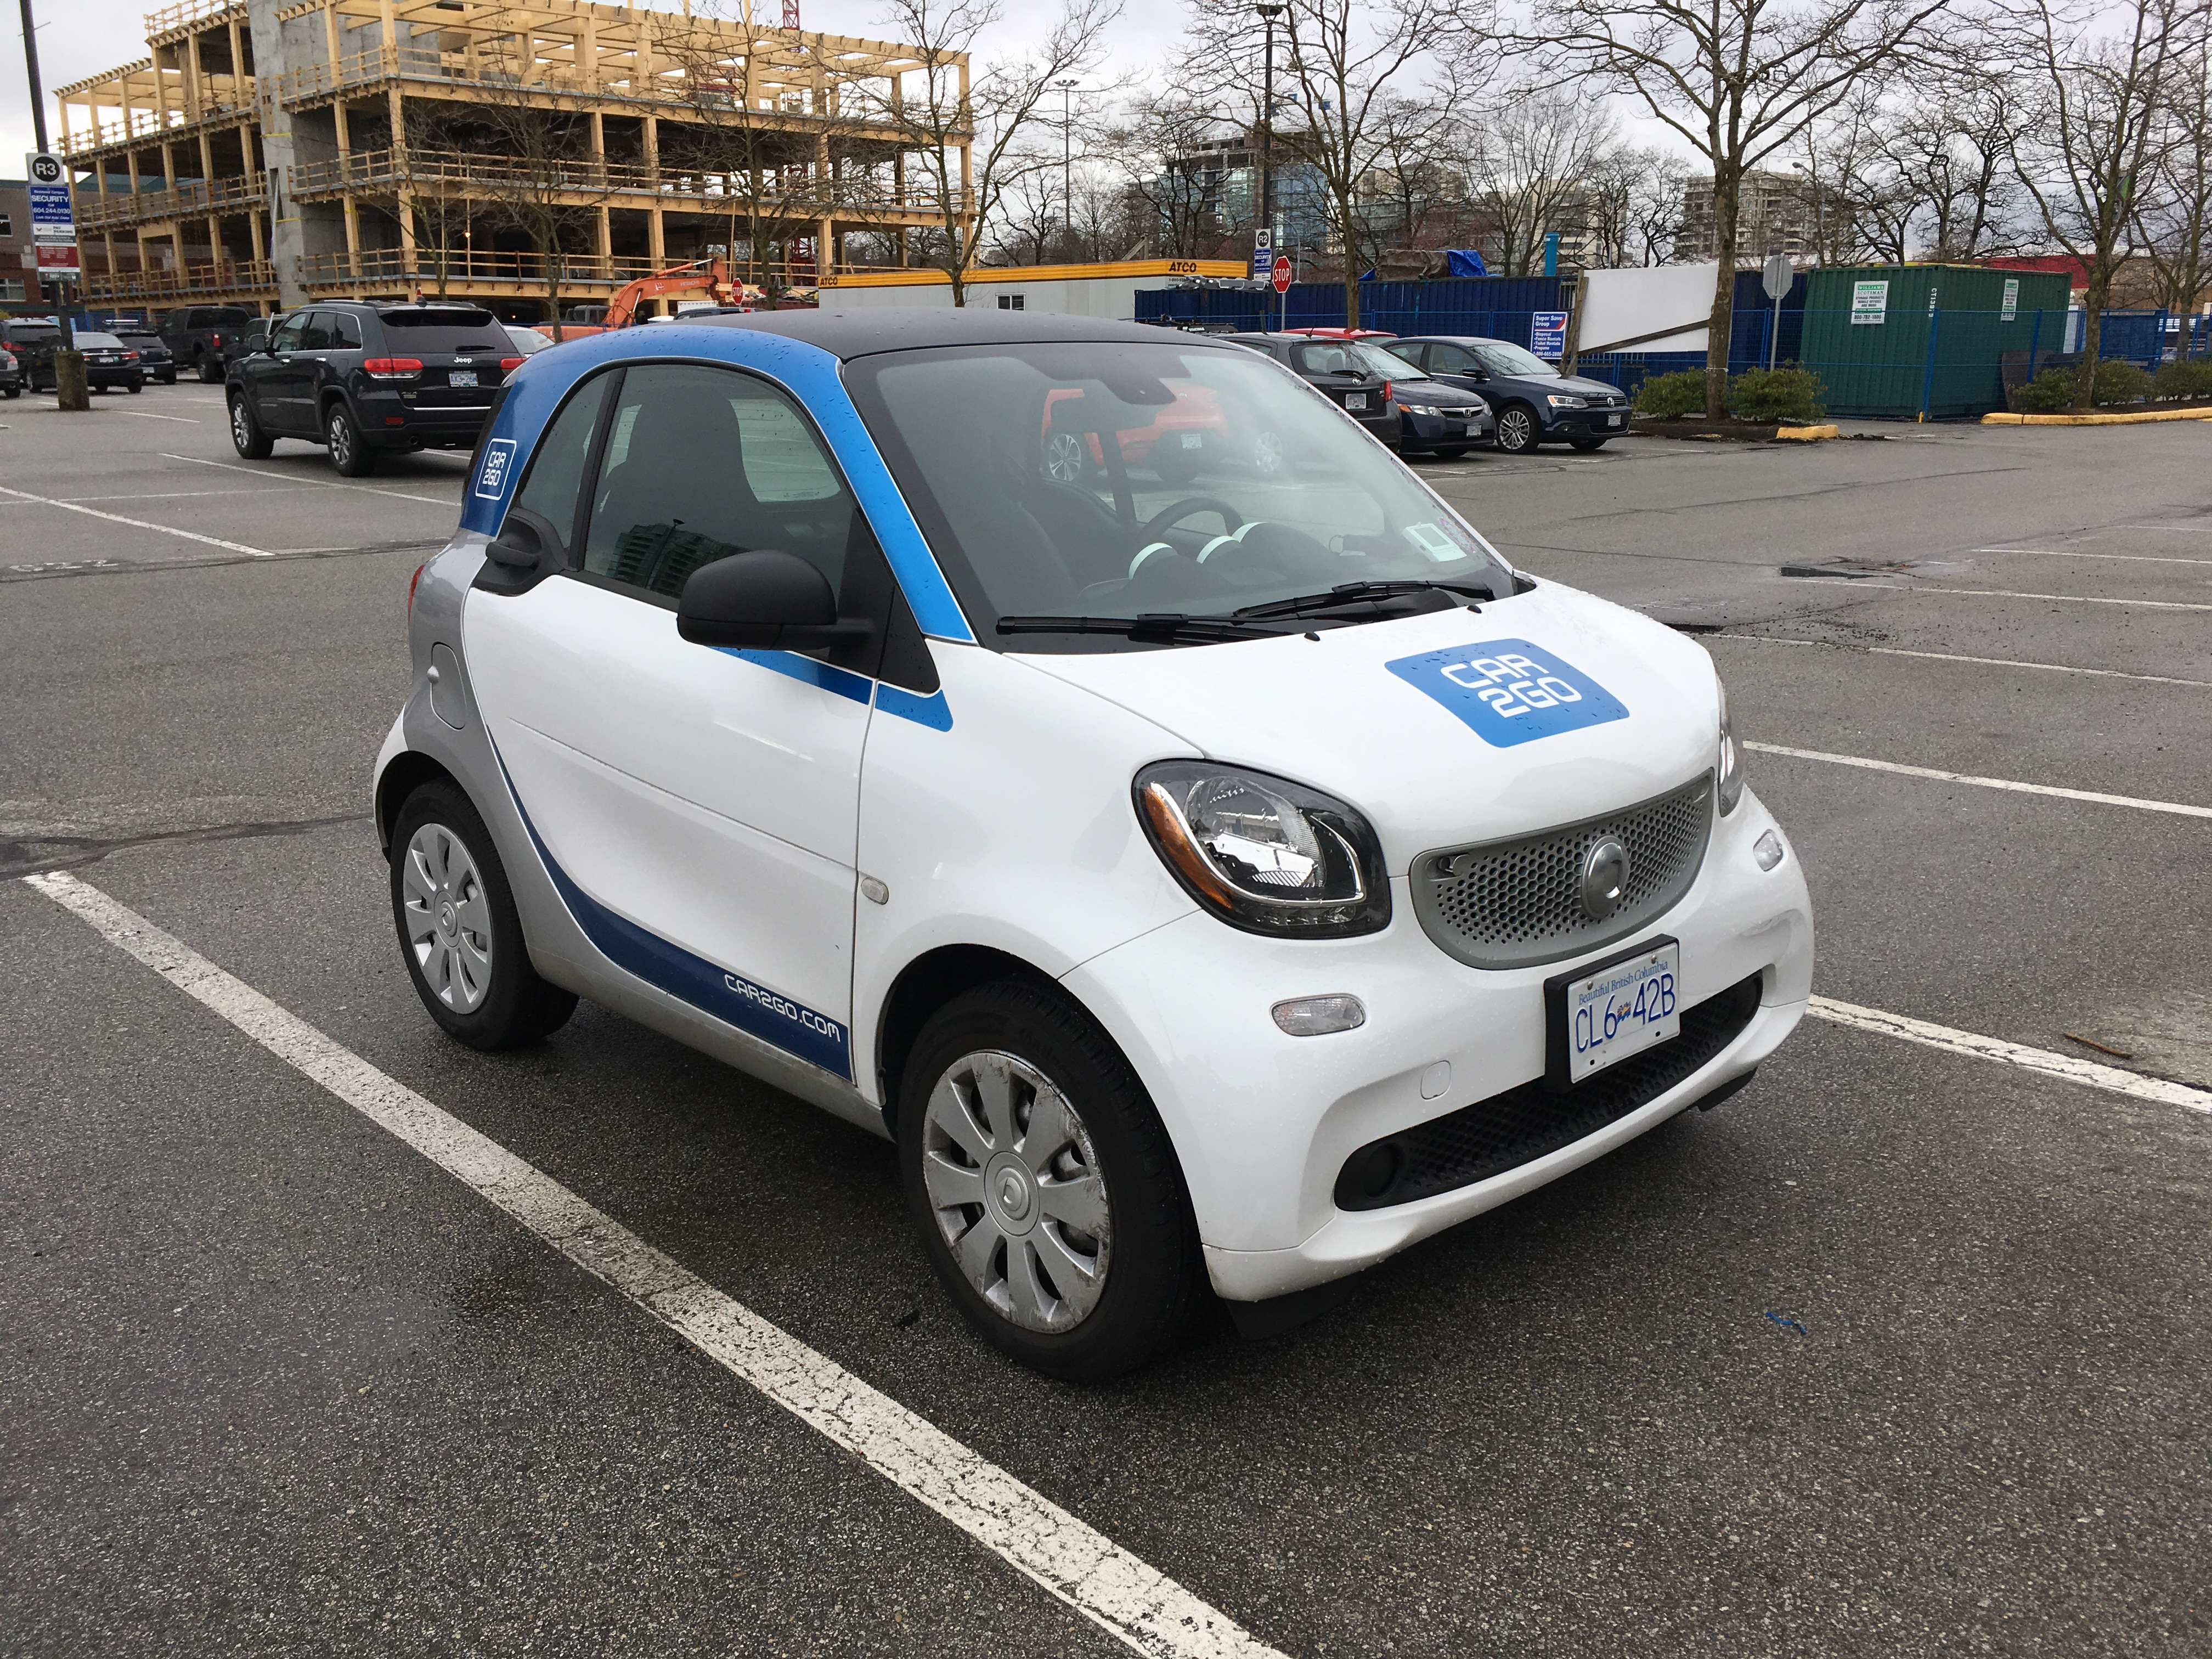 Driving around with car2go